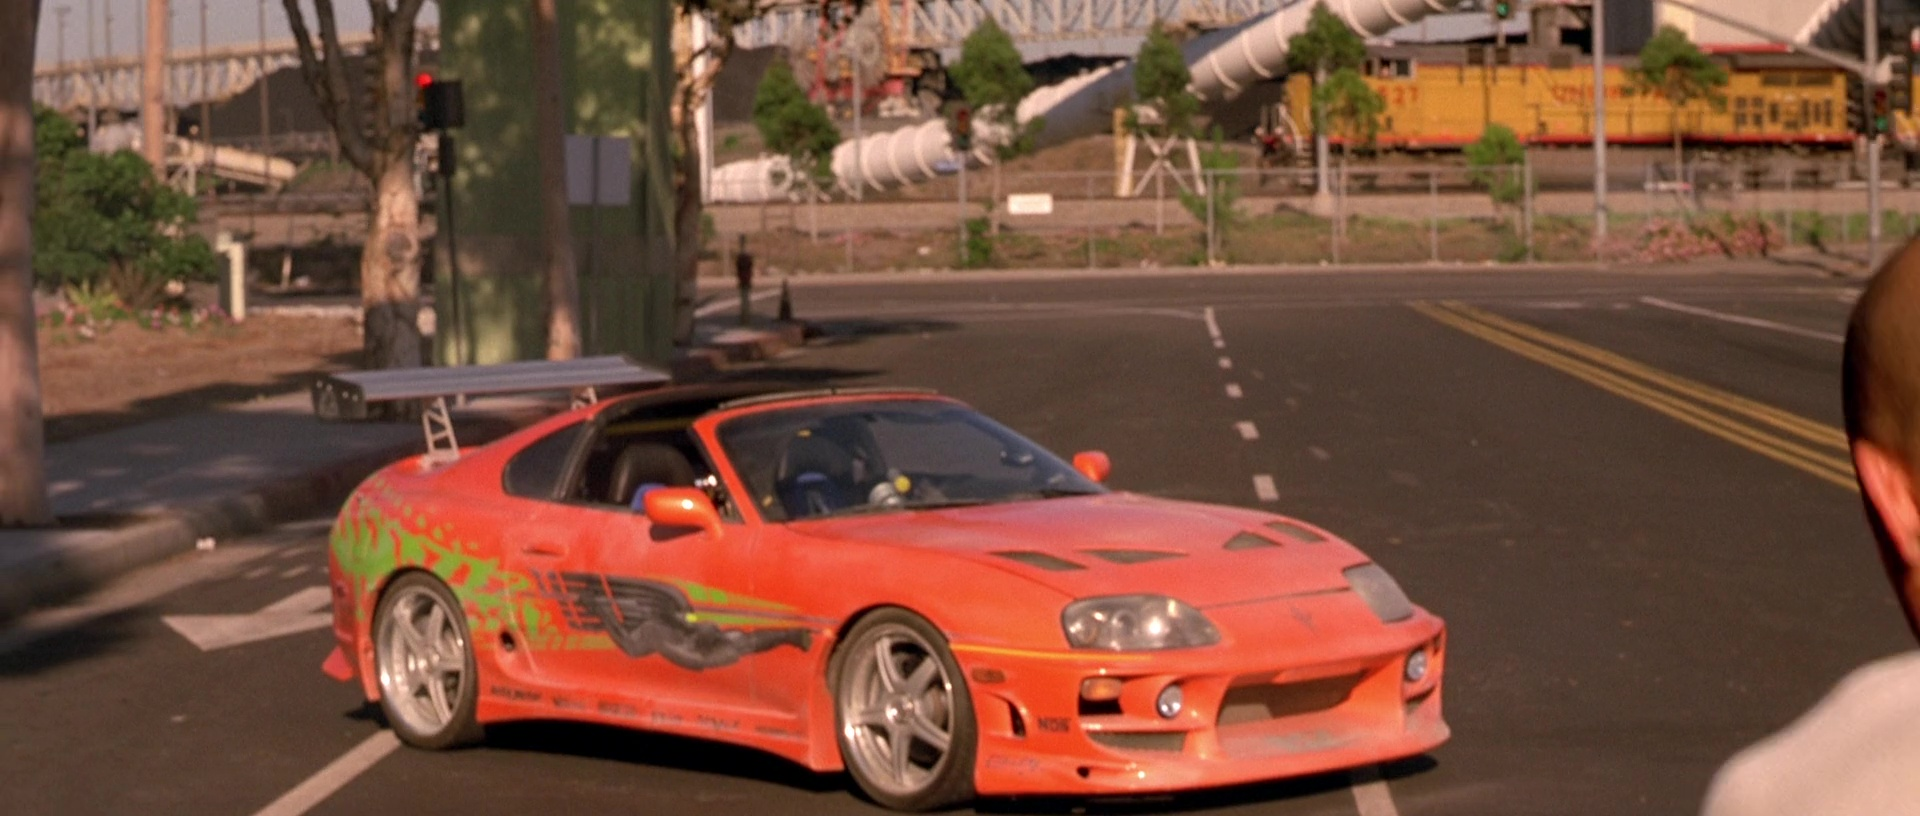 Image Dom S Toyota Supra Side View Jpg The Fast And